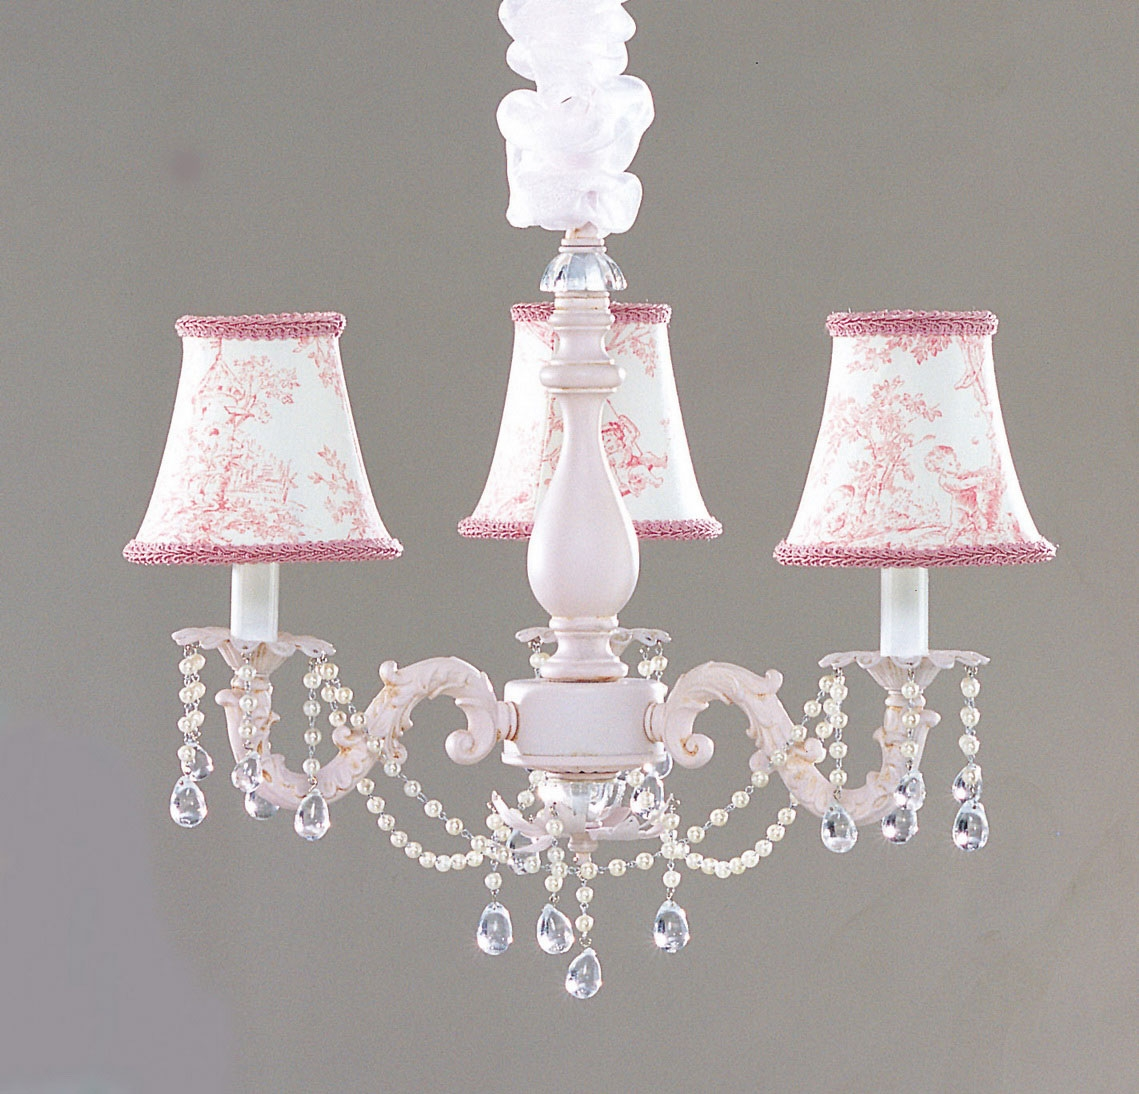 25 Ideas Of Mini Chandeliers For Nursery Chandelier Ideas